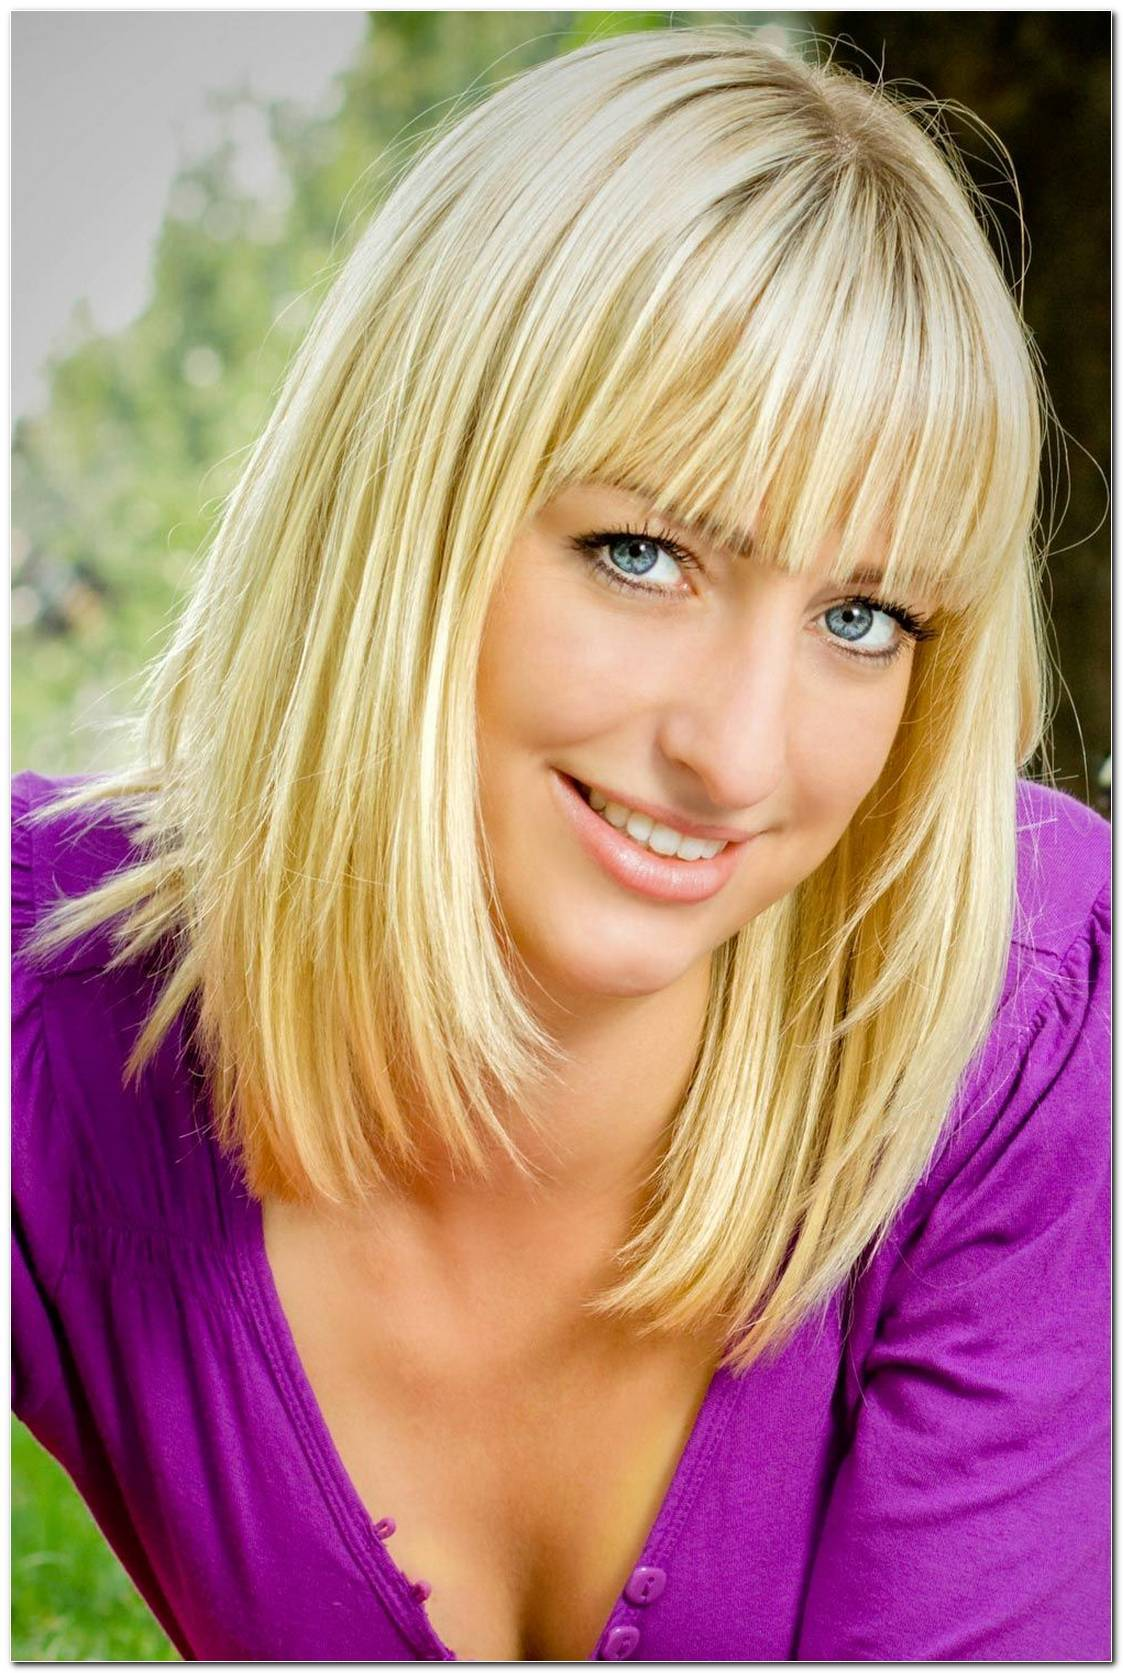 Bob Frisuren Blond Mit Pony